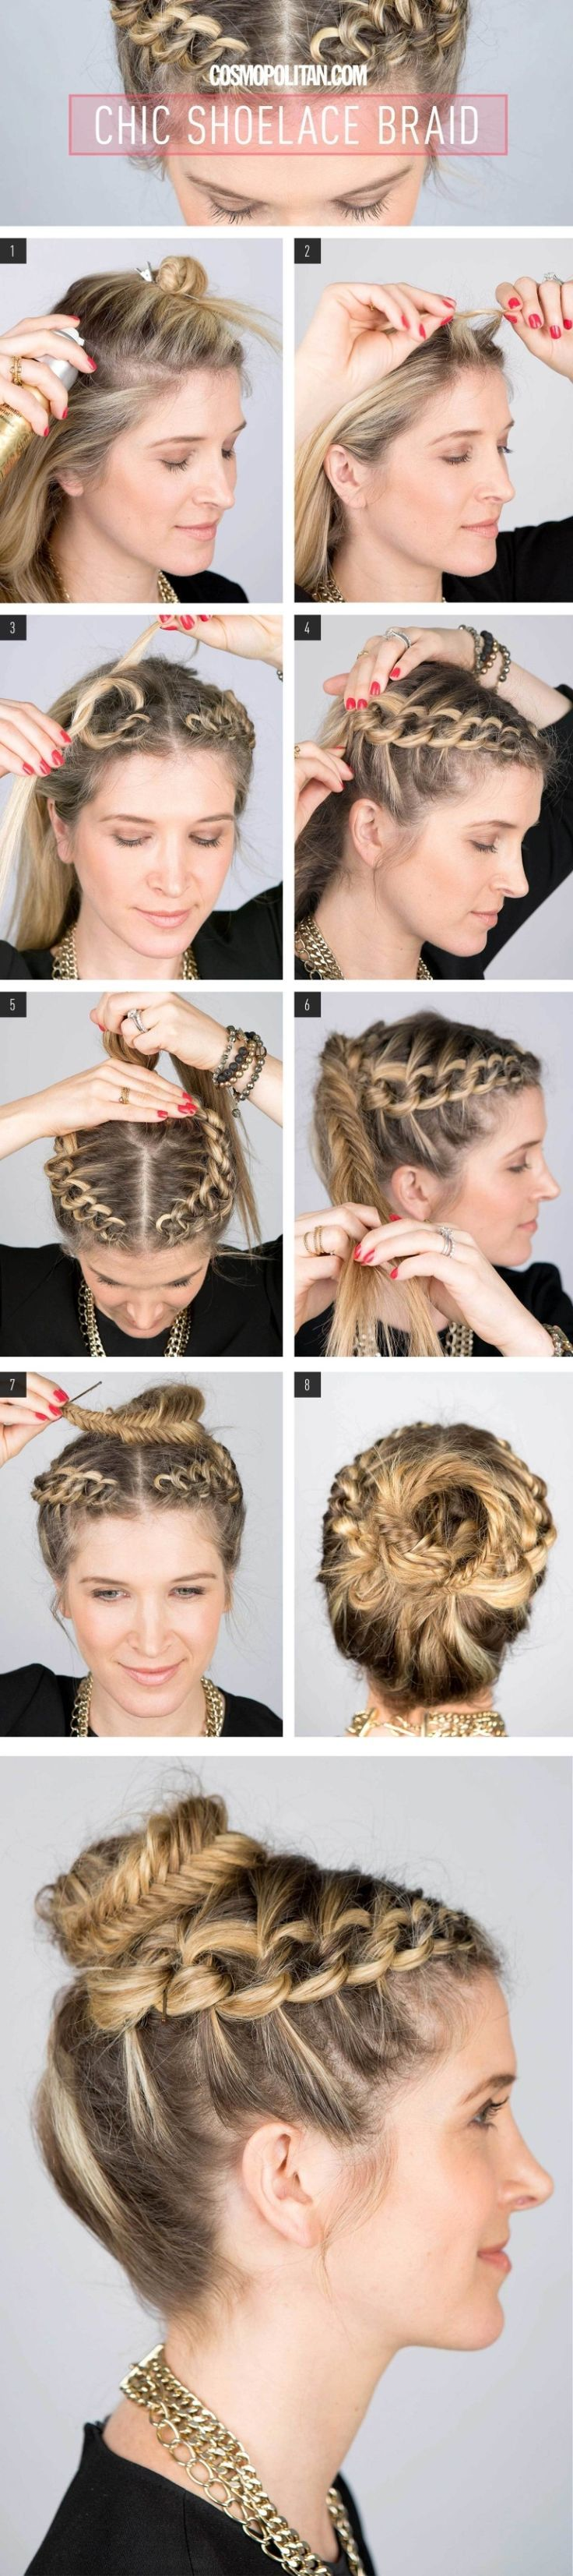 213 best Fashion & Hairstyles images on Pinterest